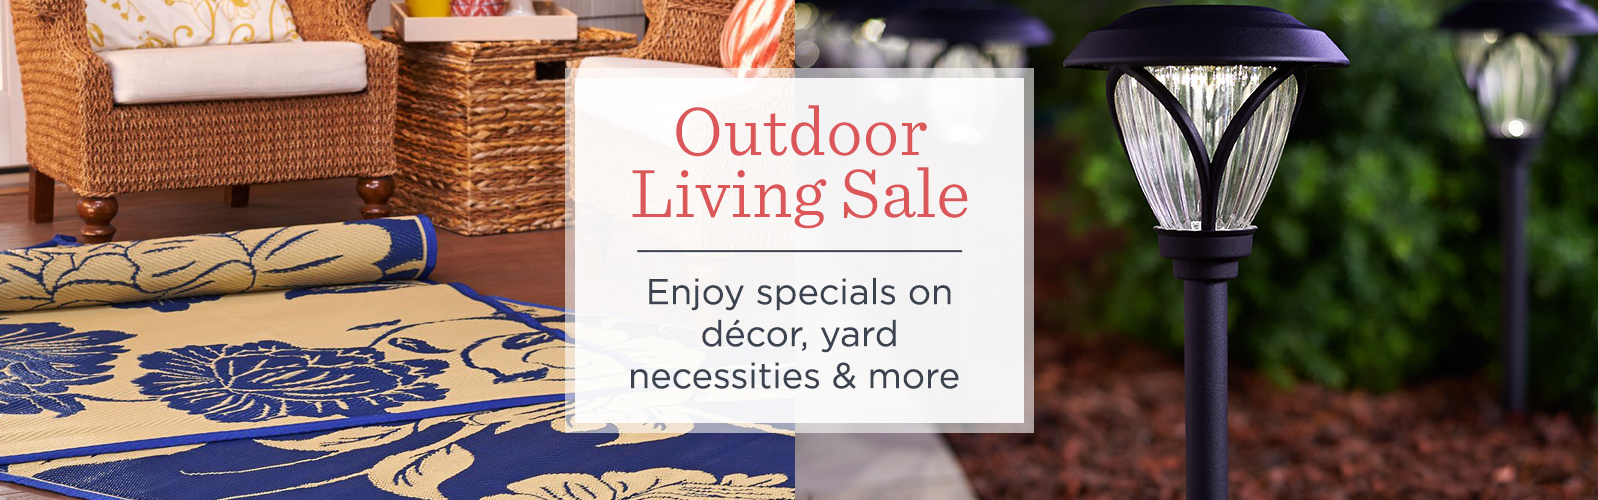 Garden & Outdoor Living Sale  Enjoy specials on décor, yard necessities & more